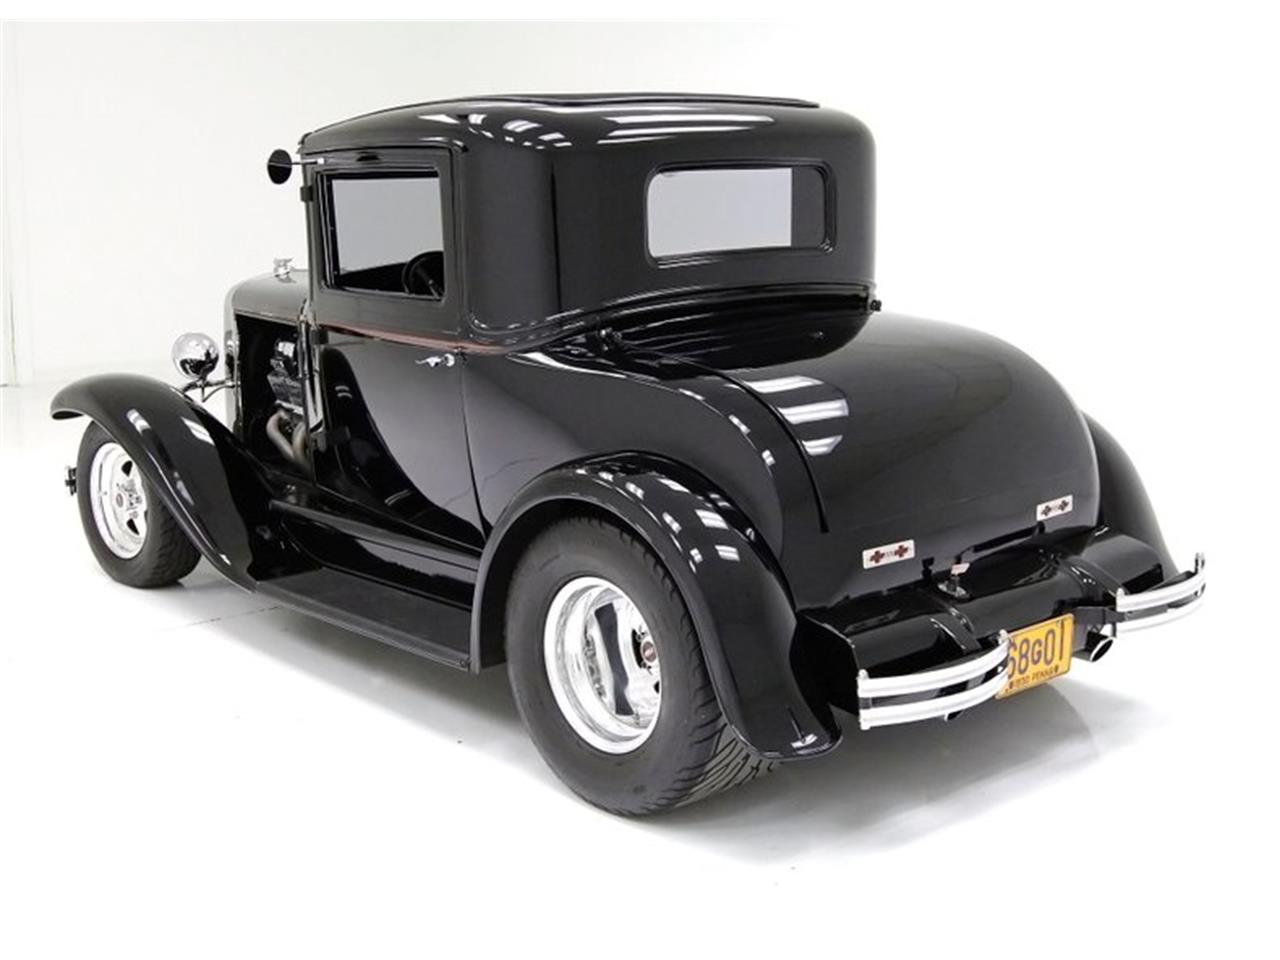 1930 Chevrolet 3-Window Coupe for sale in Morgantown, PA – photo 4